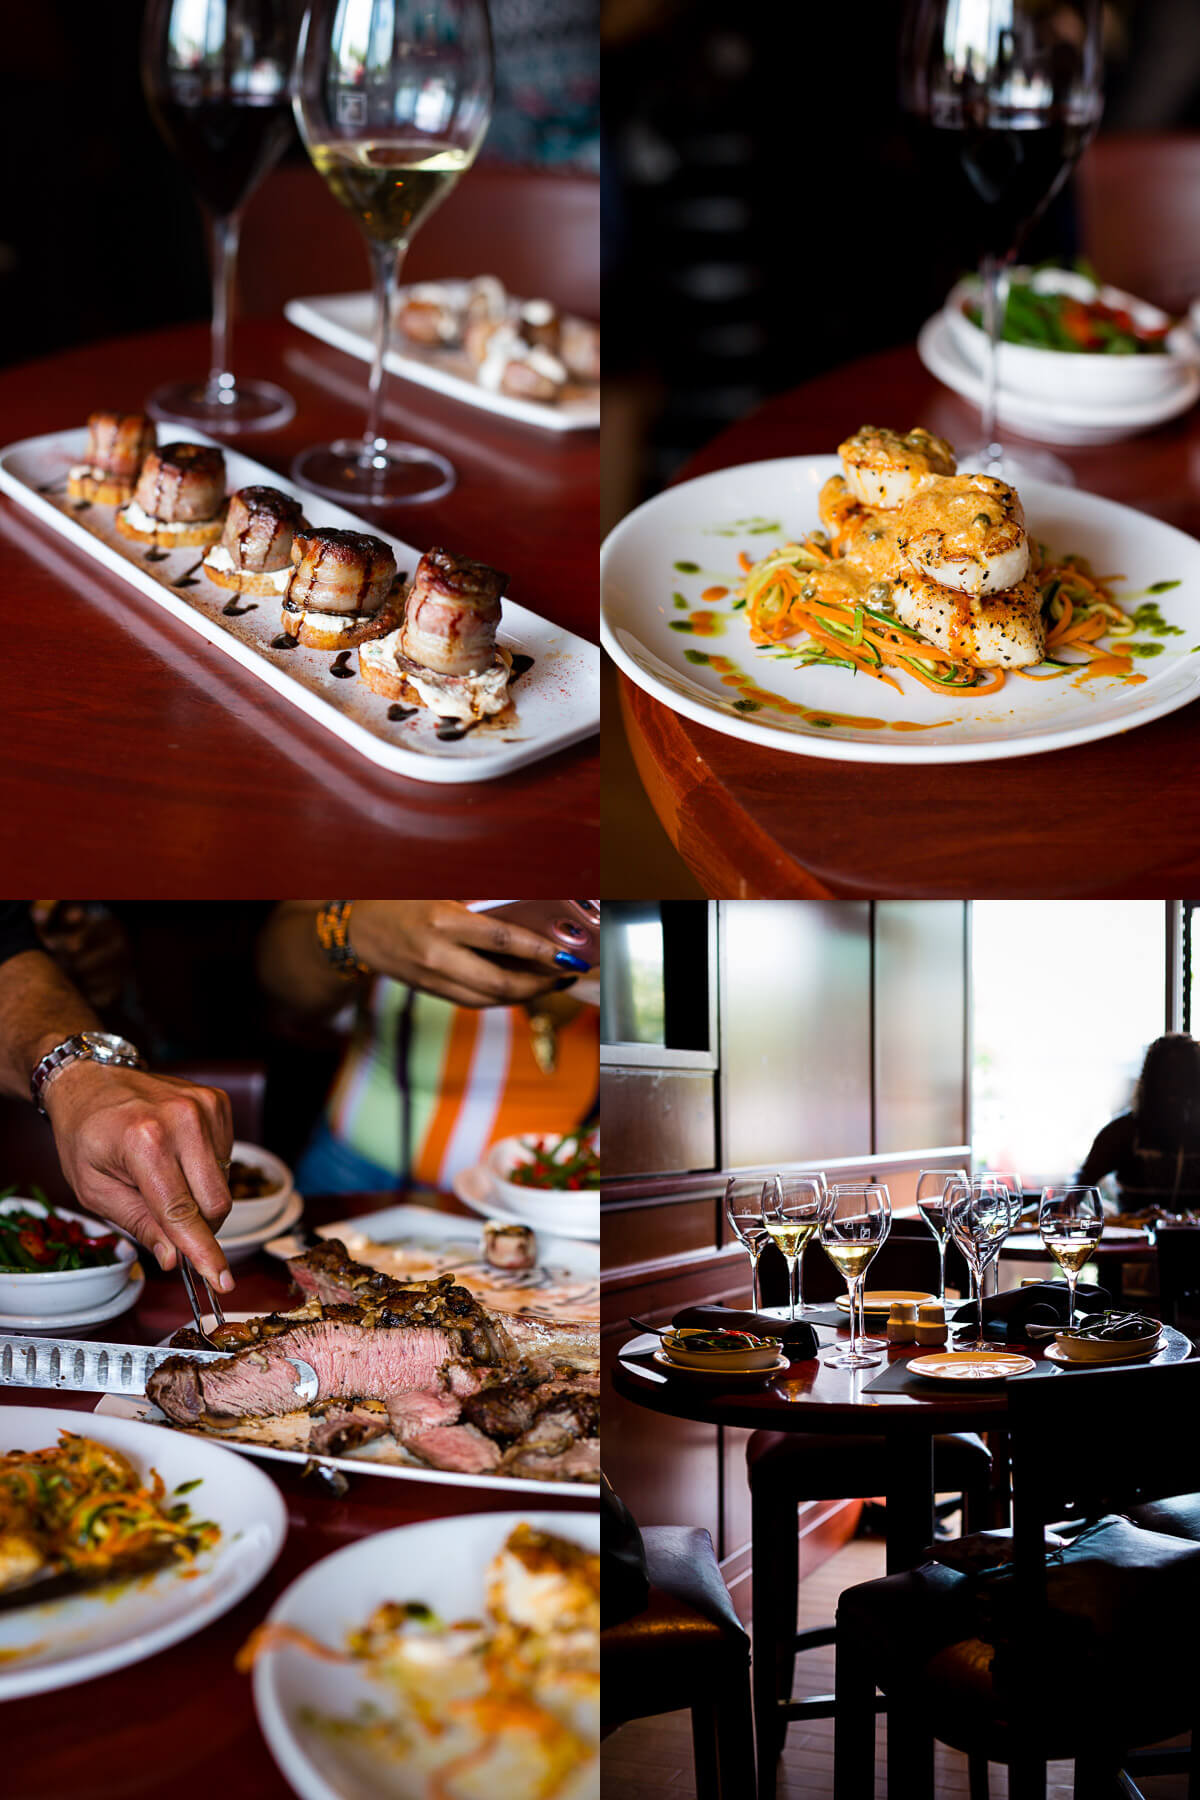 A photo collage of dishes from Fleming's Prime Steakhouse.